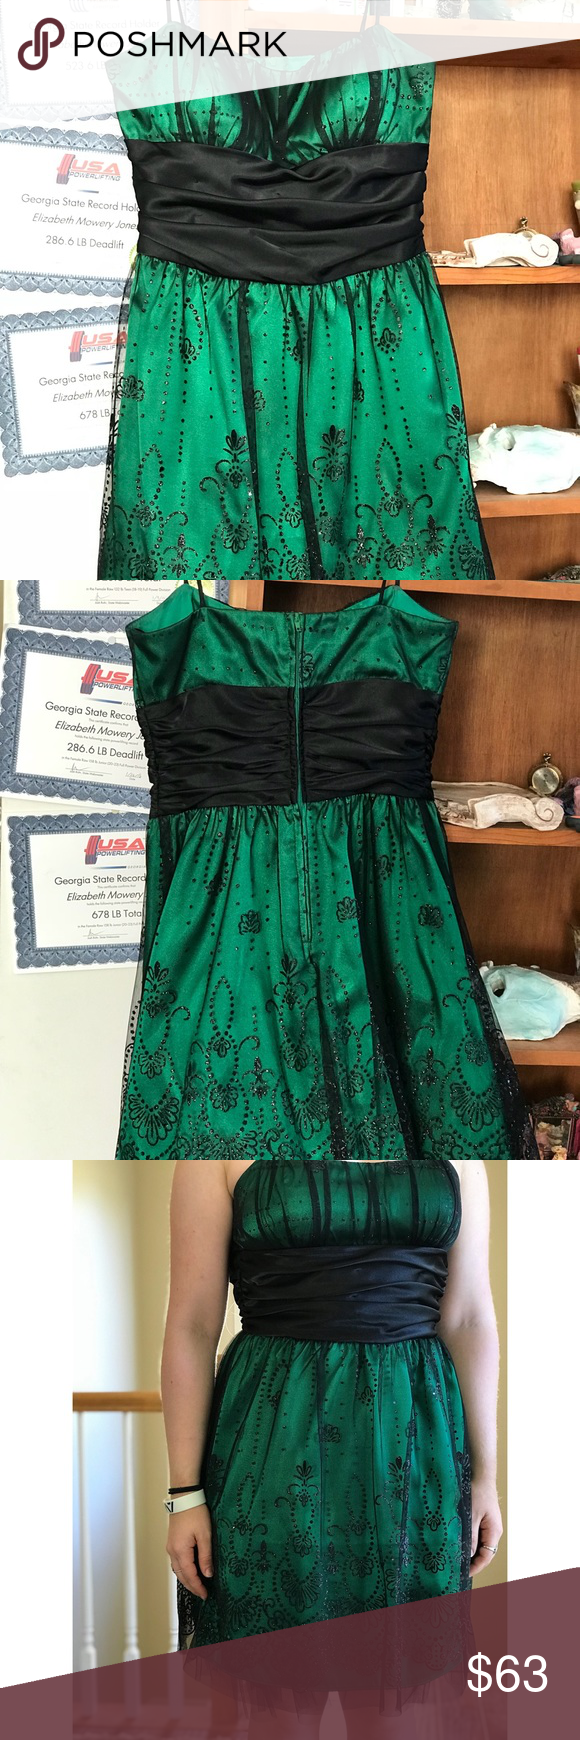 Green dress with lace overlay  Formal Dress  School dances Green silk and Masquerade dresses